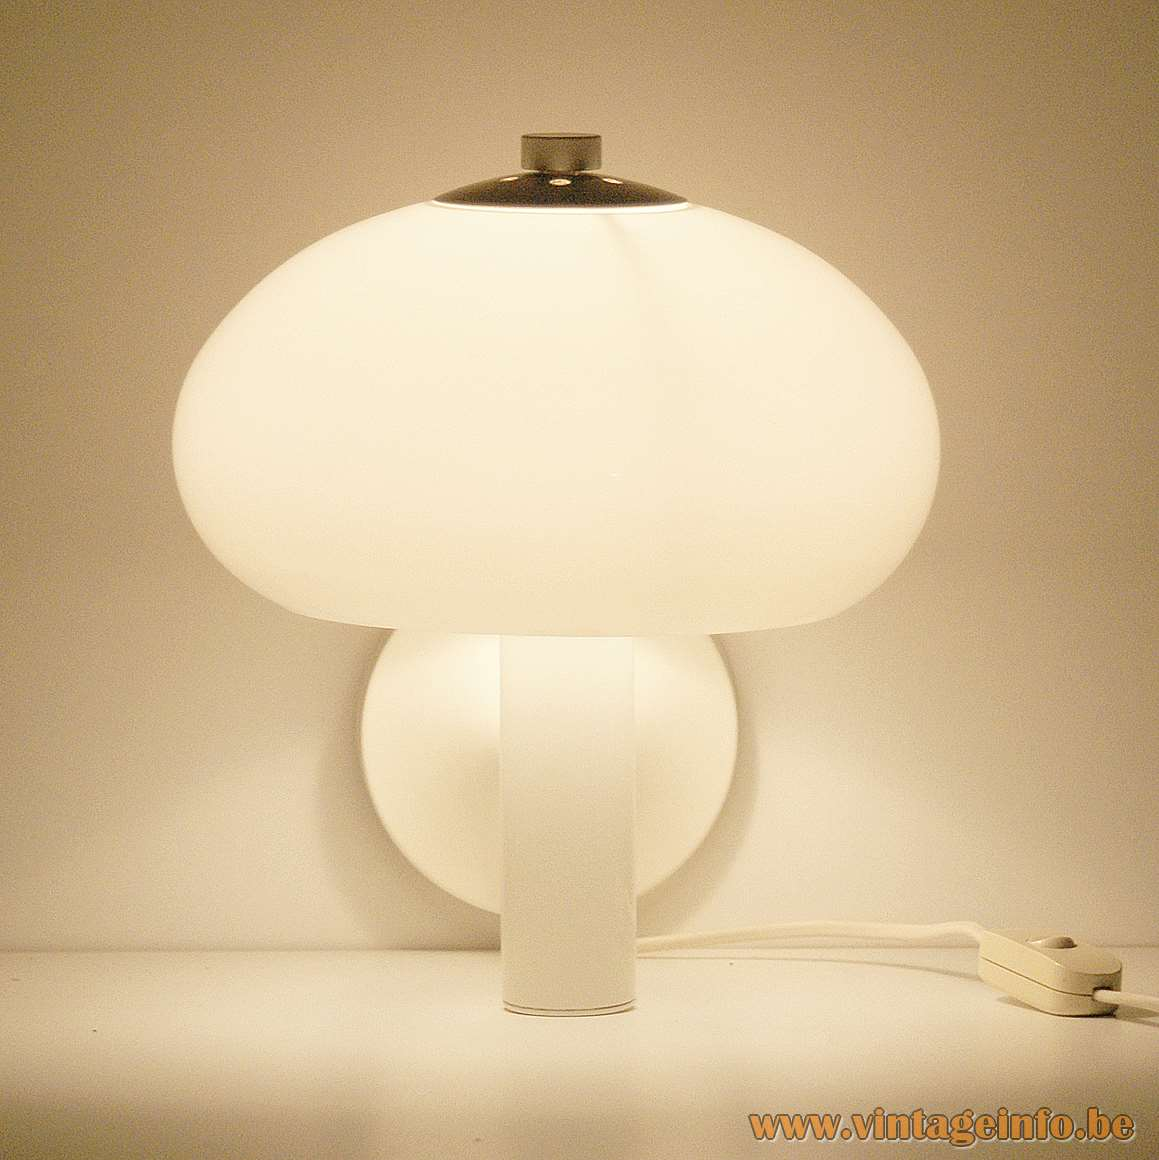 Mushroom Wall Lamp - Massive Lighting